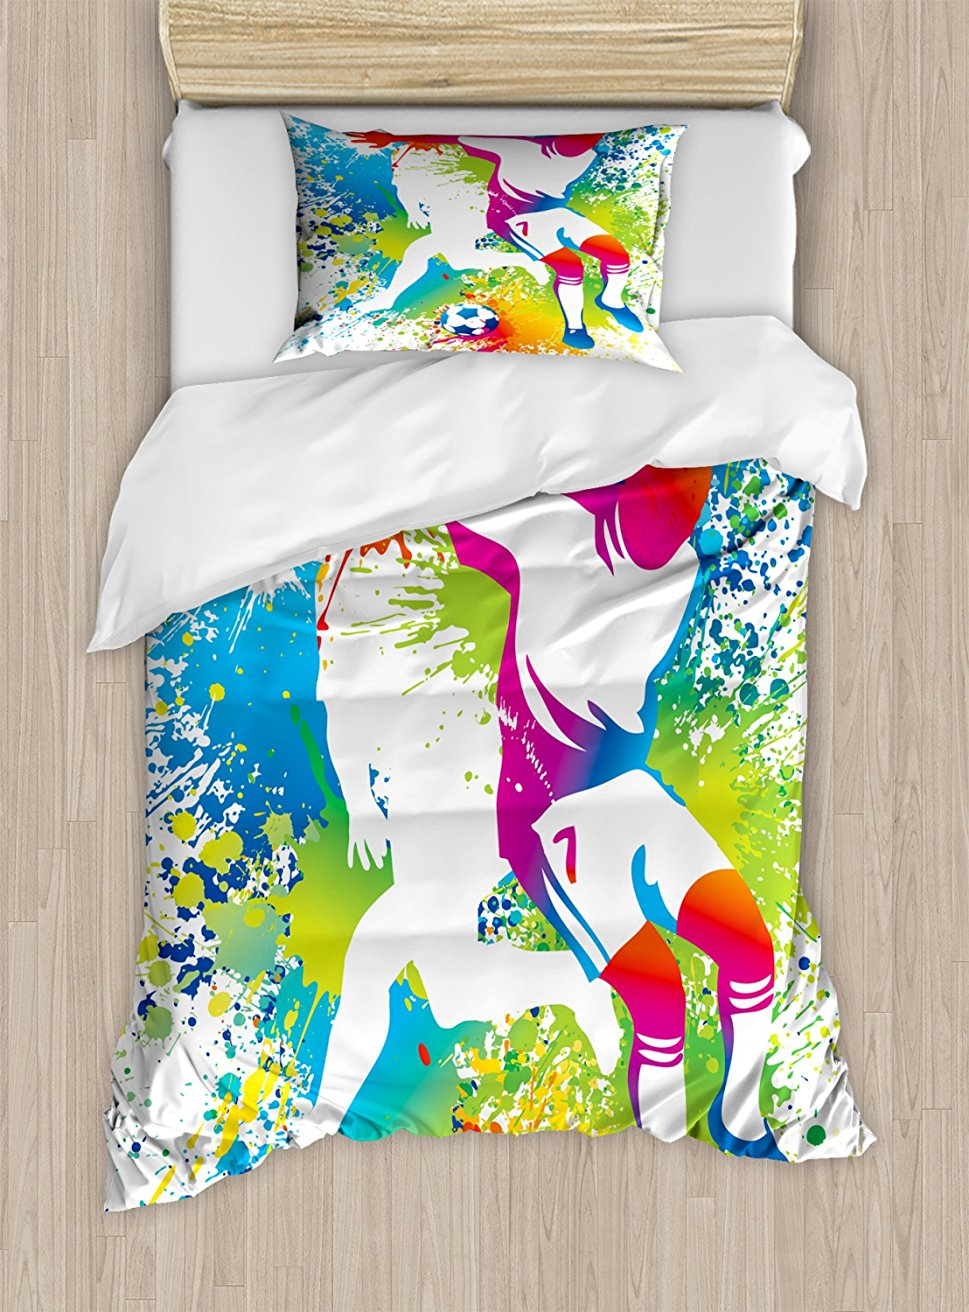 Youth Duvet Cover Set, Football Players with a Soccer Ball and Colorful Grunge Splashes Competition Sports 4 Piece Bedding Set